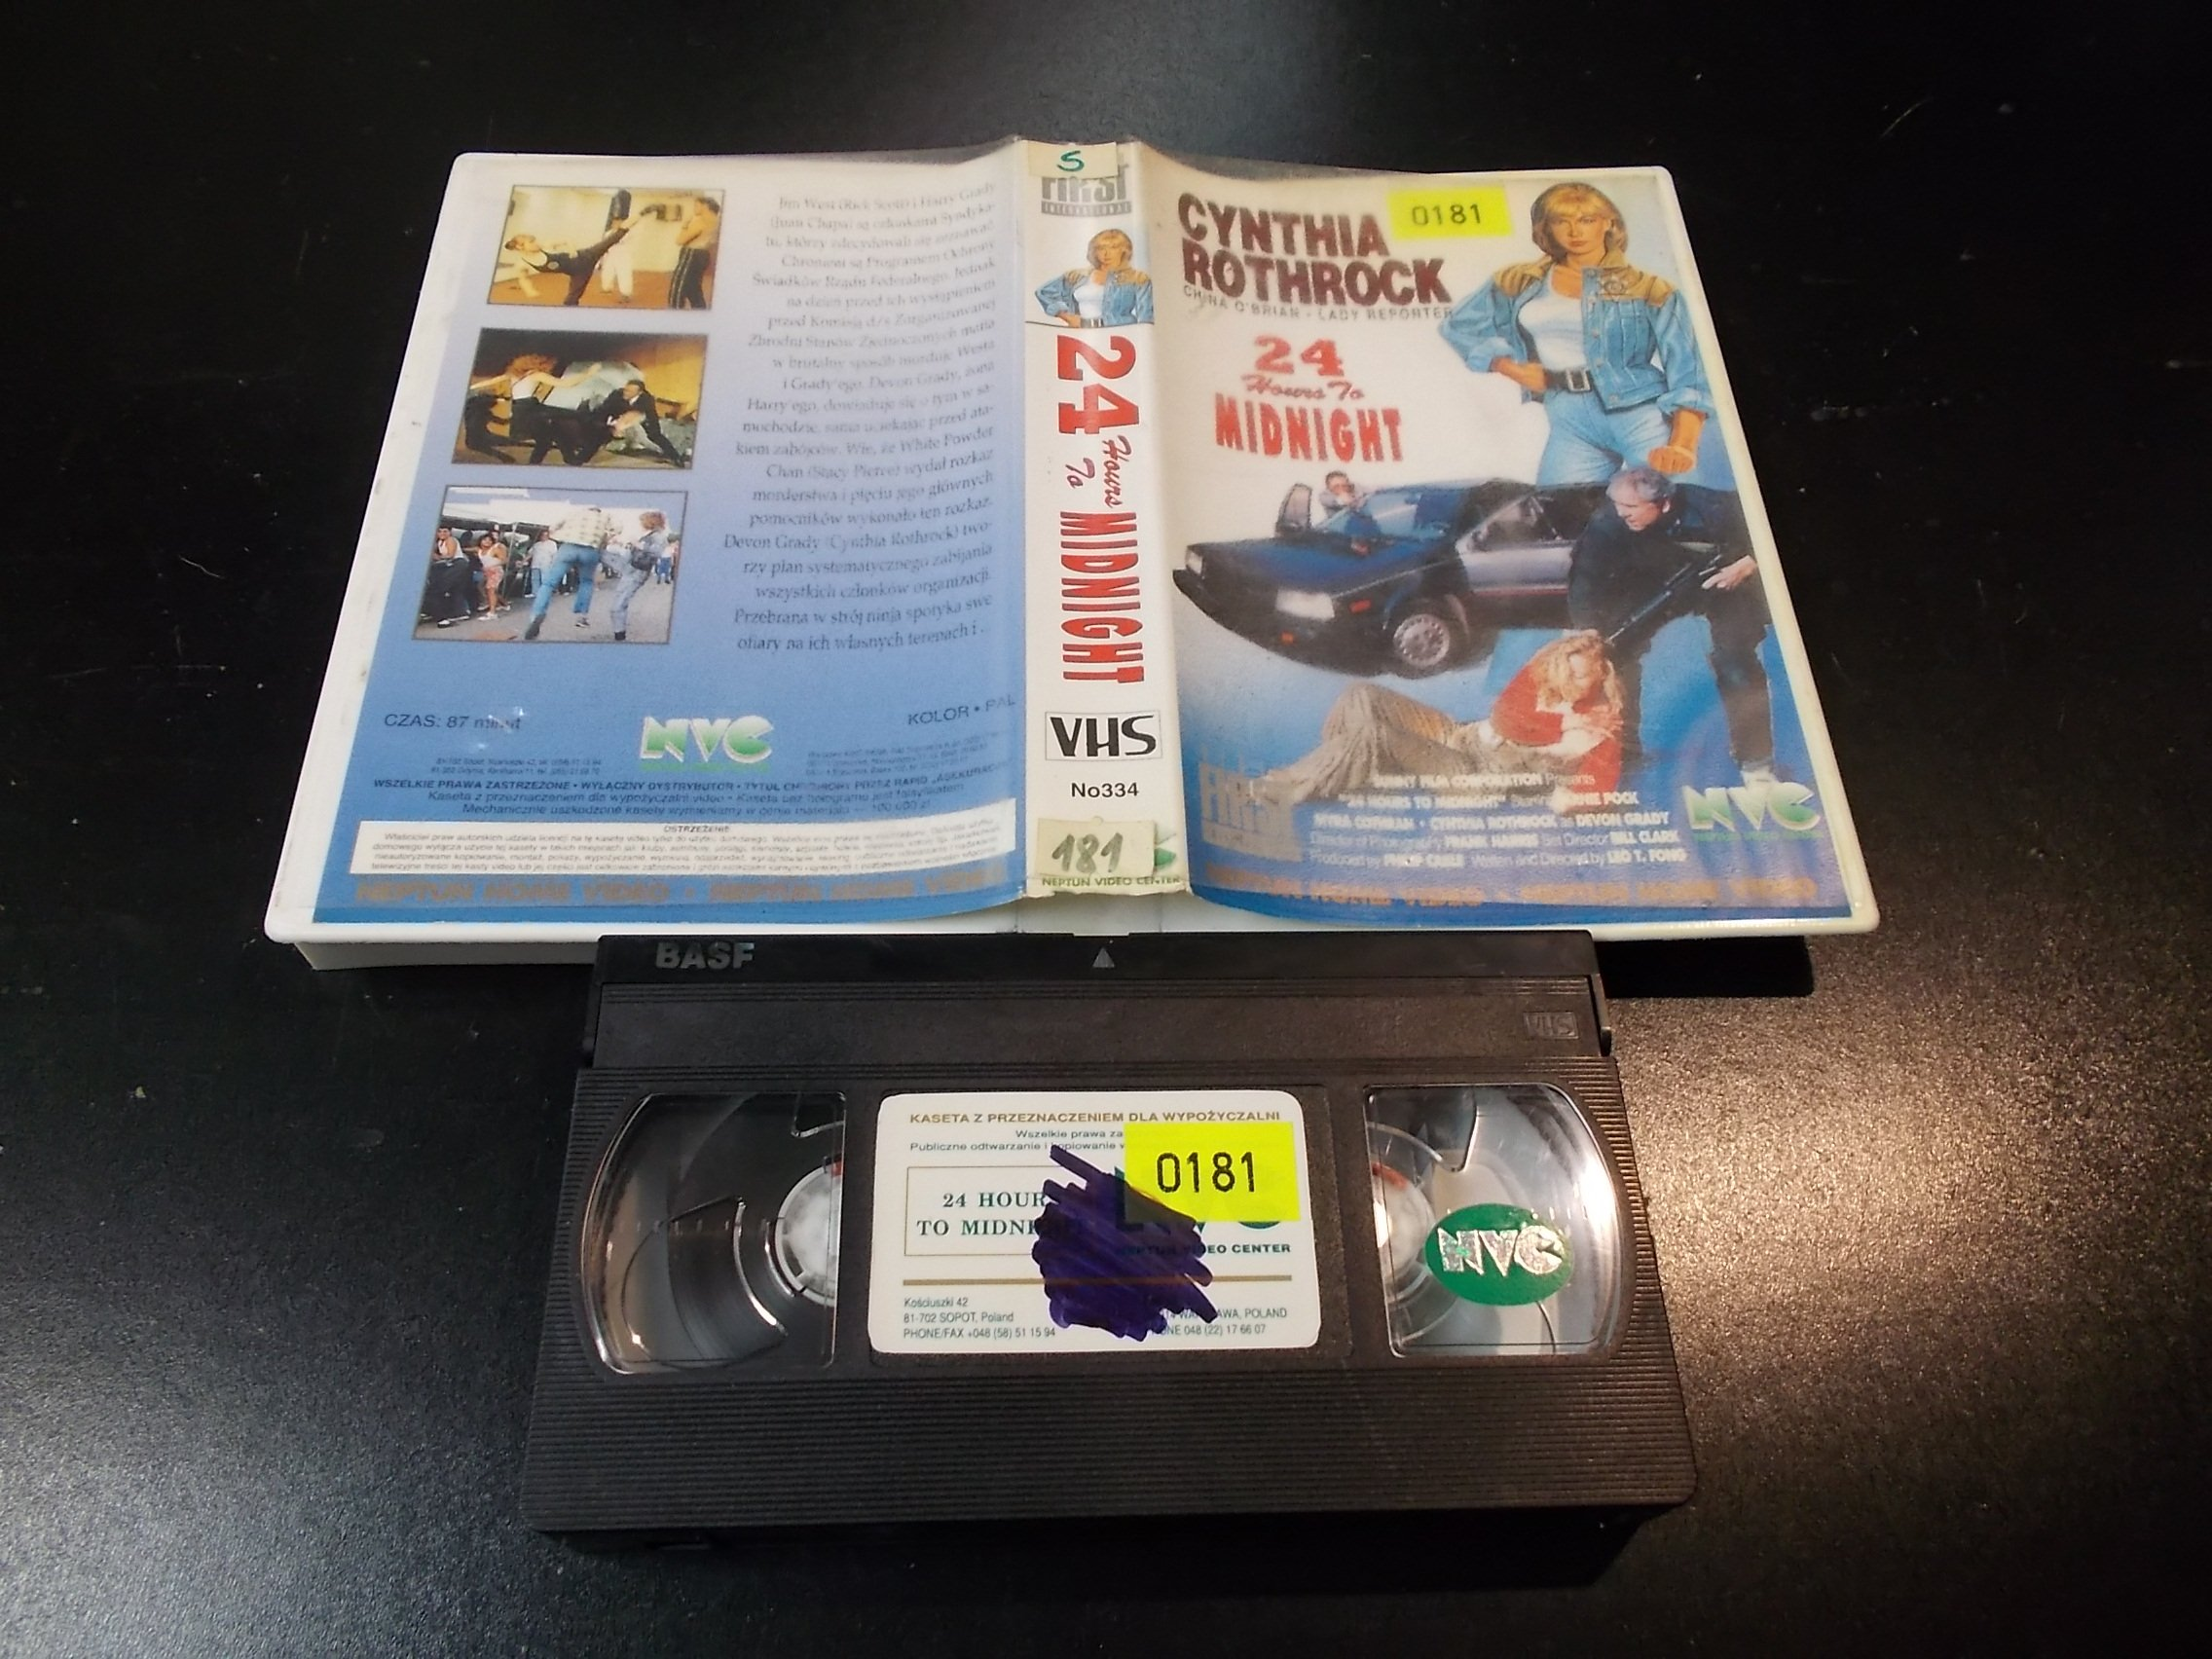 24 HOURS TO MIDNPGHT - kaseta Video VHS - 1376 Sklep